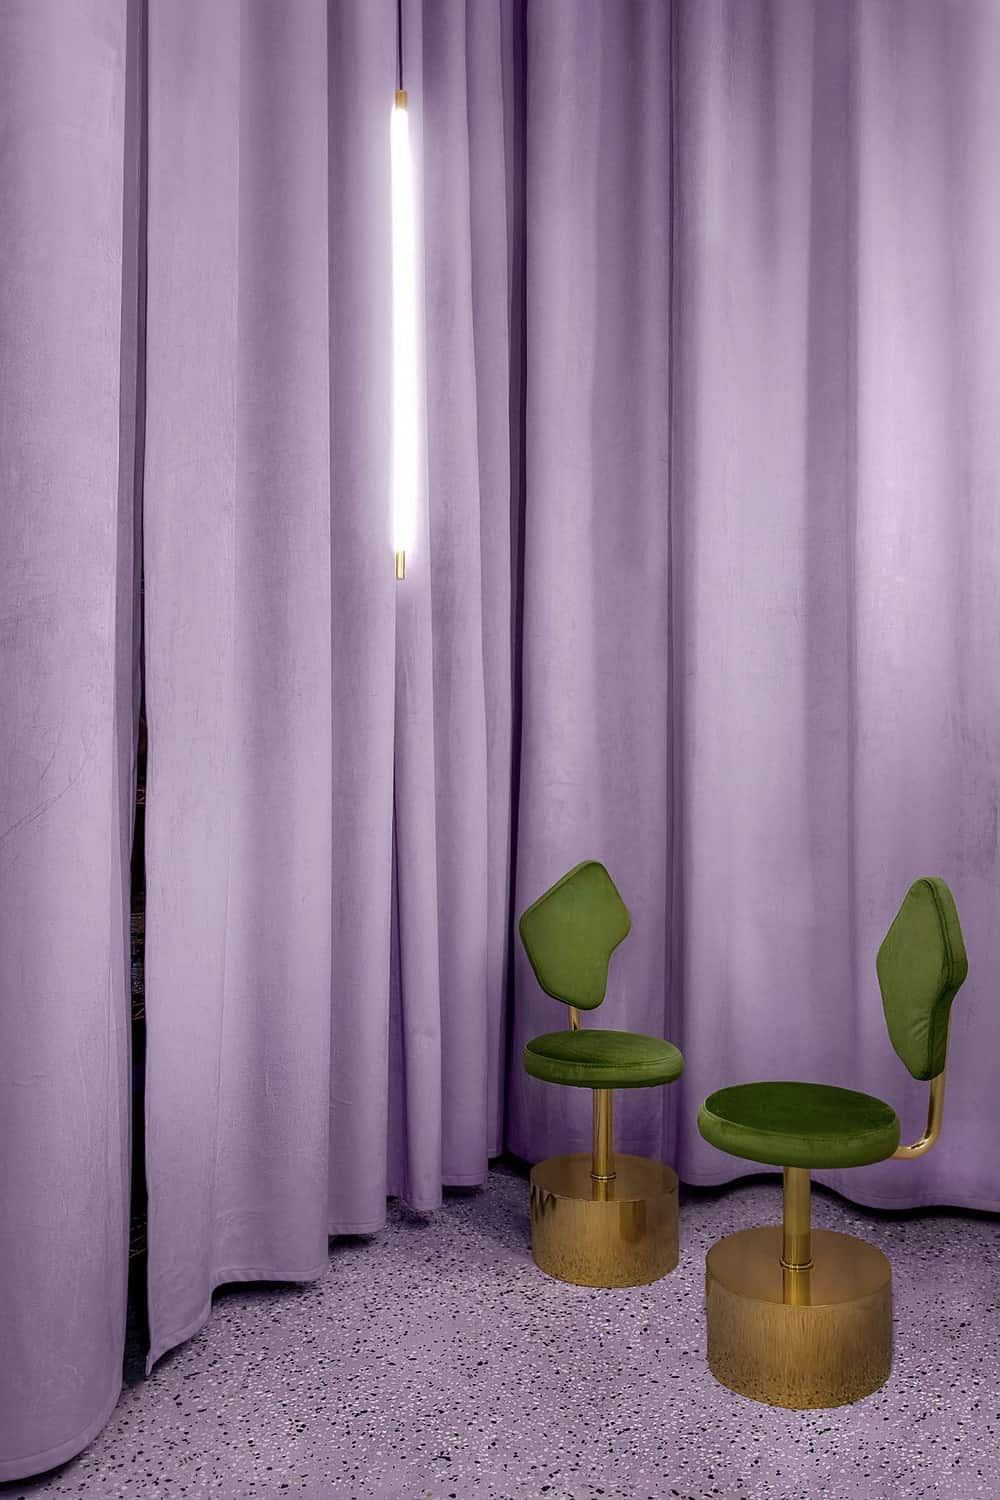 This corner of the shop has a couple of chairs that stand out against the background of purplish pink curtains.